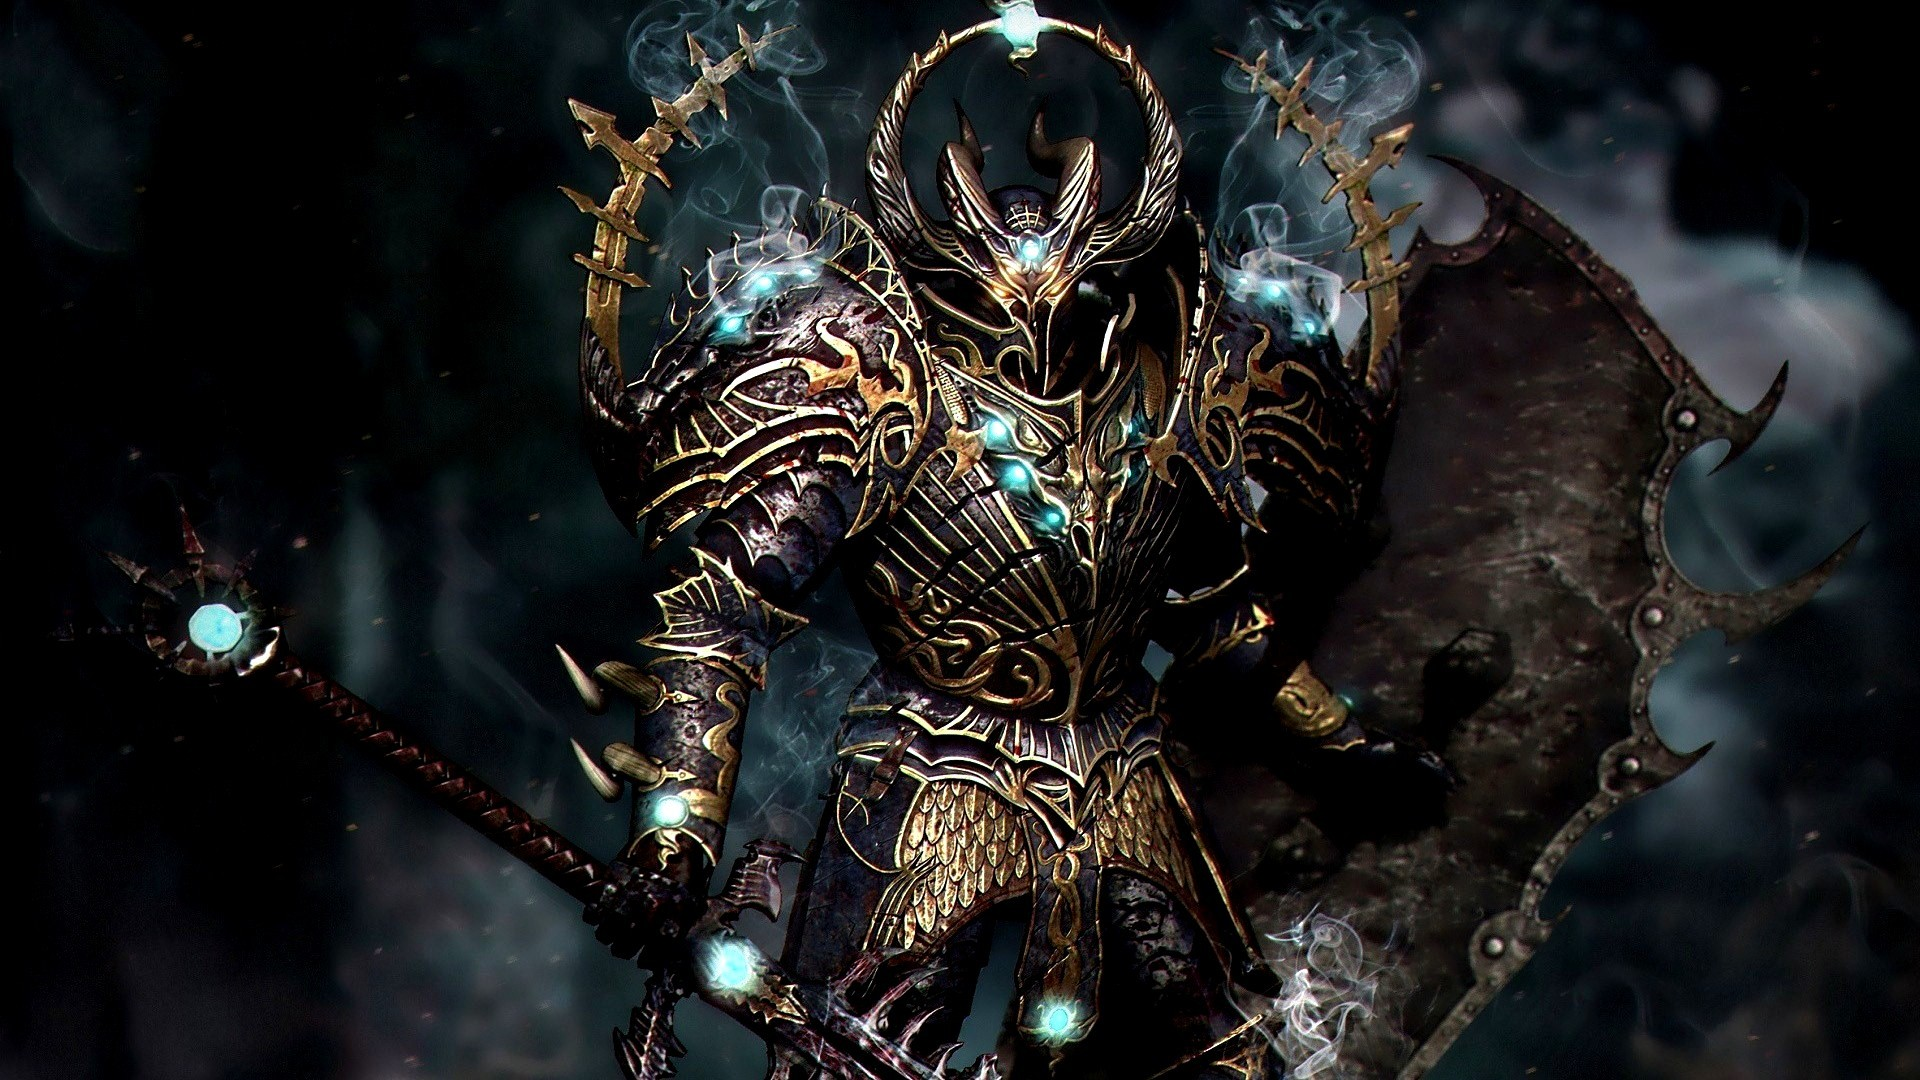 Warrior HD Wallpapers Free Download   Unique FHDQ Backgrounds